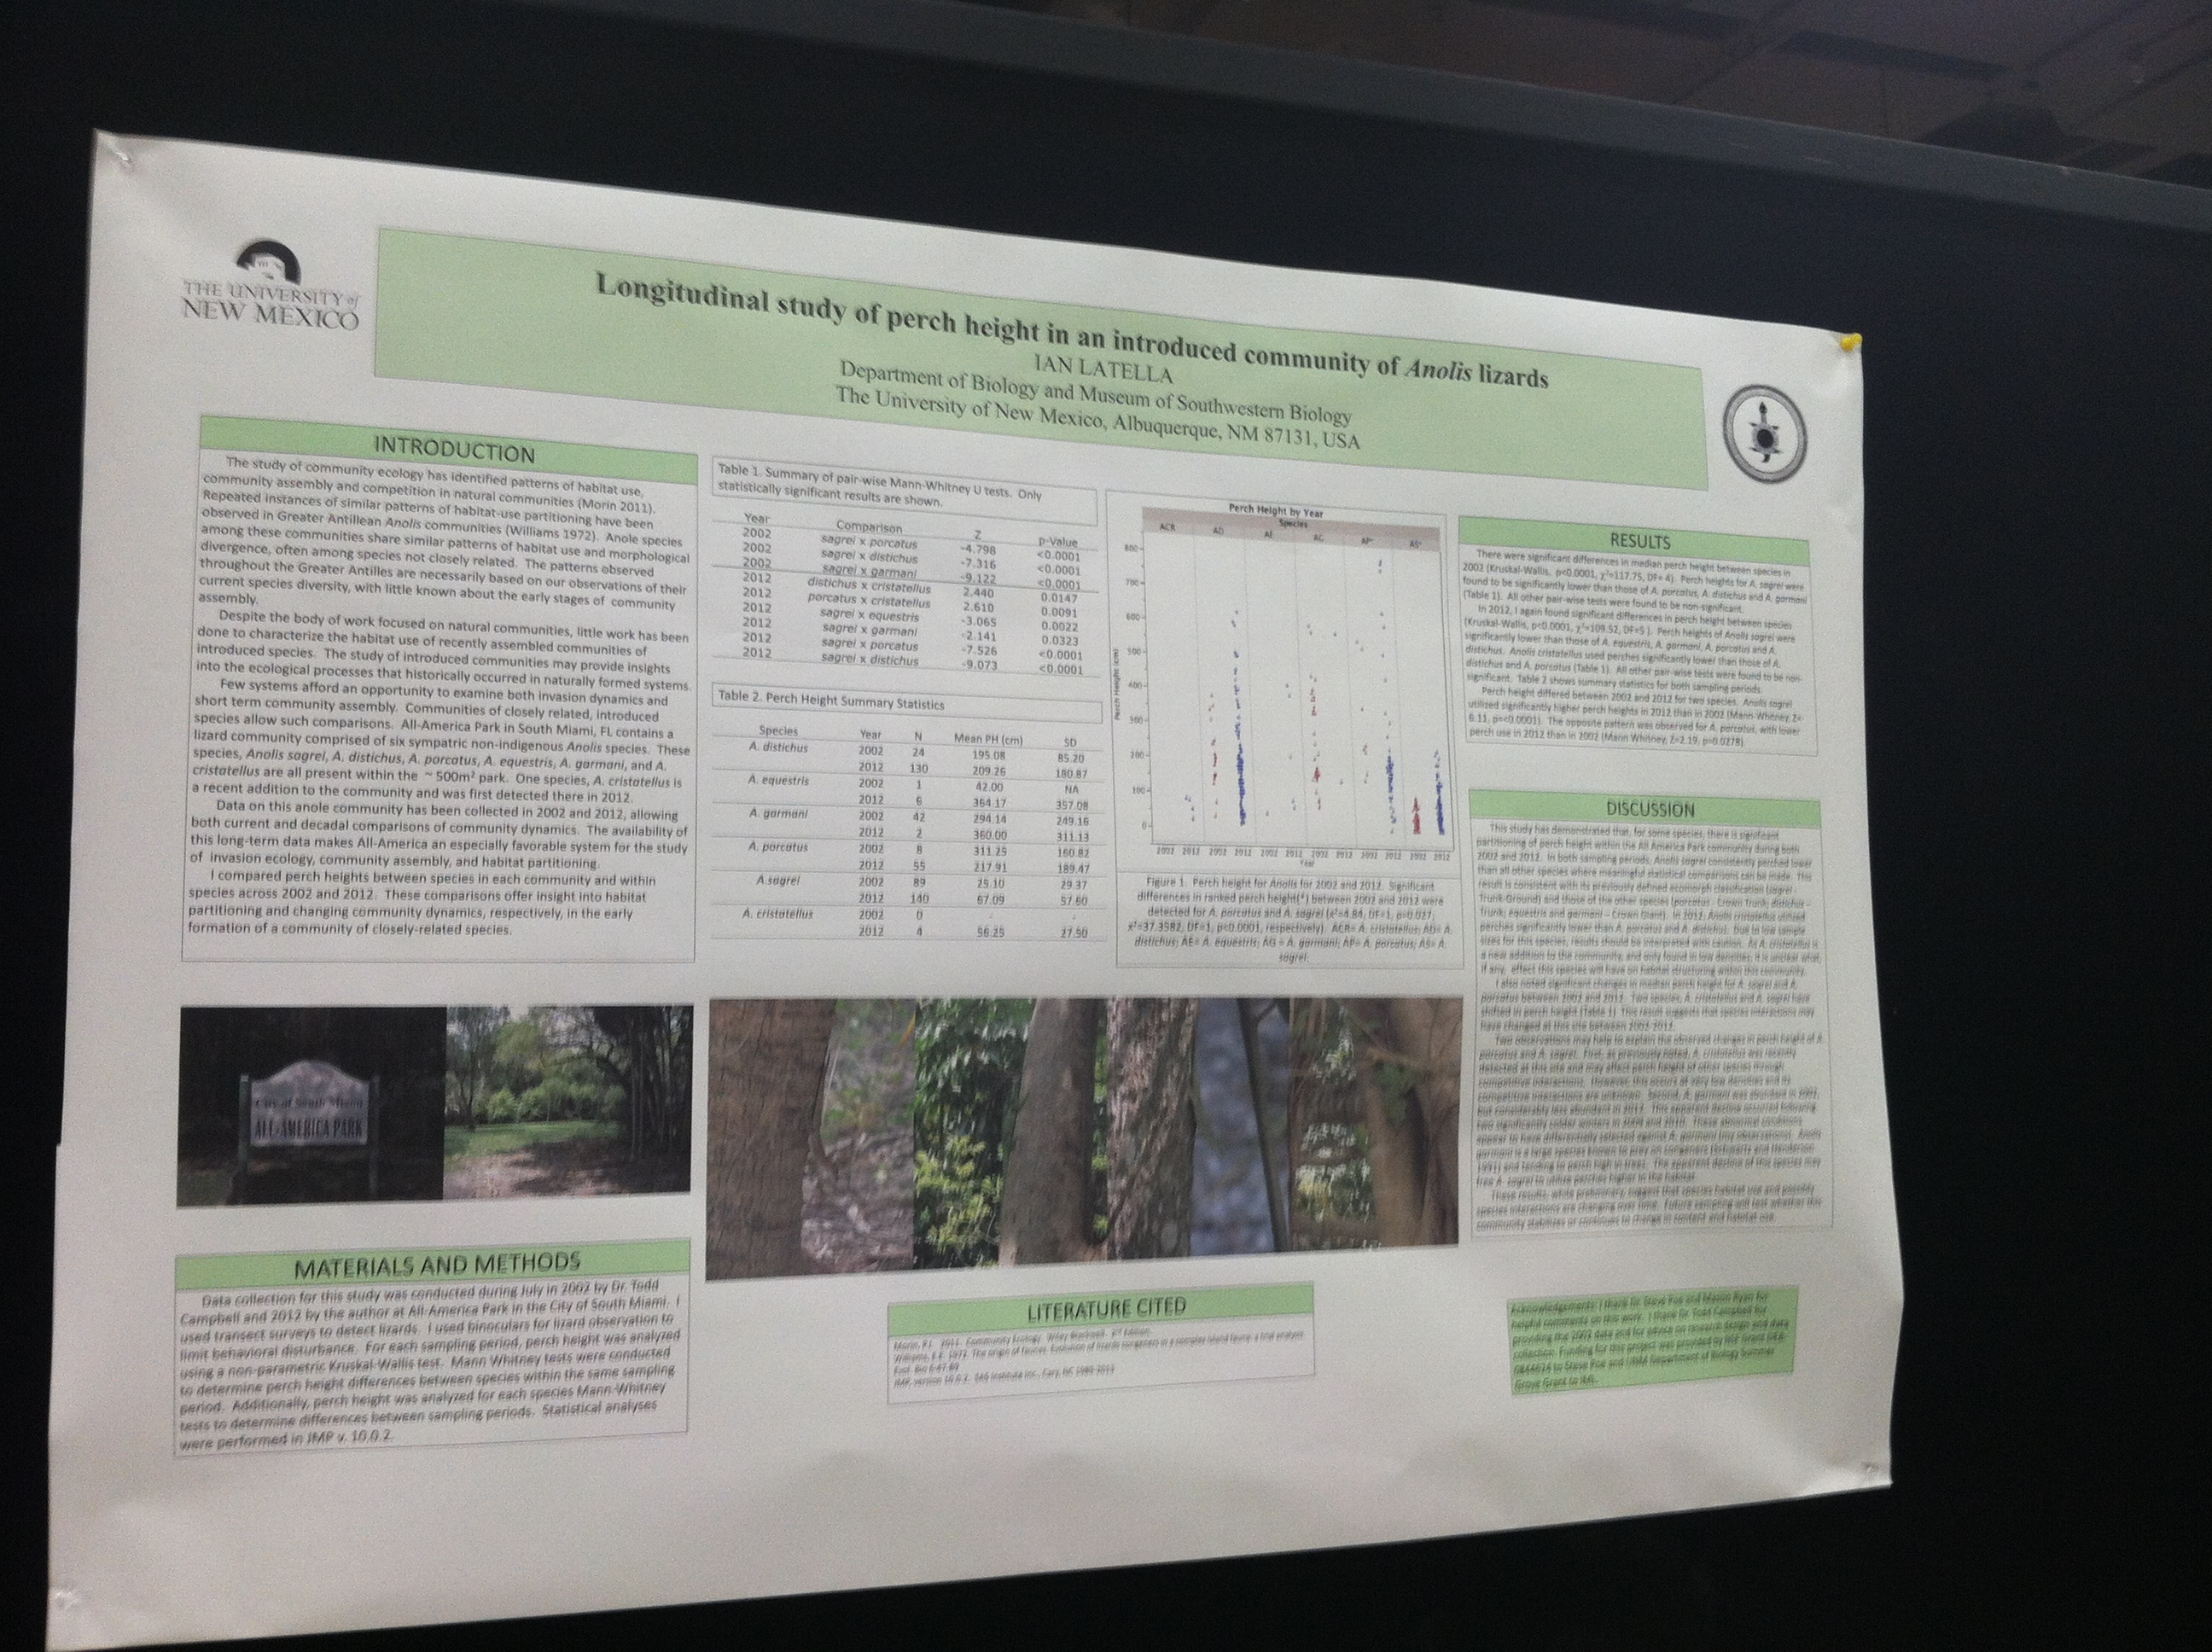 Ian Latella's poster on changes in anole habitat use in All-American Park in Miami, FL.